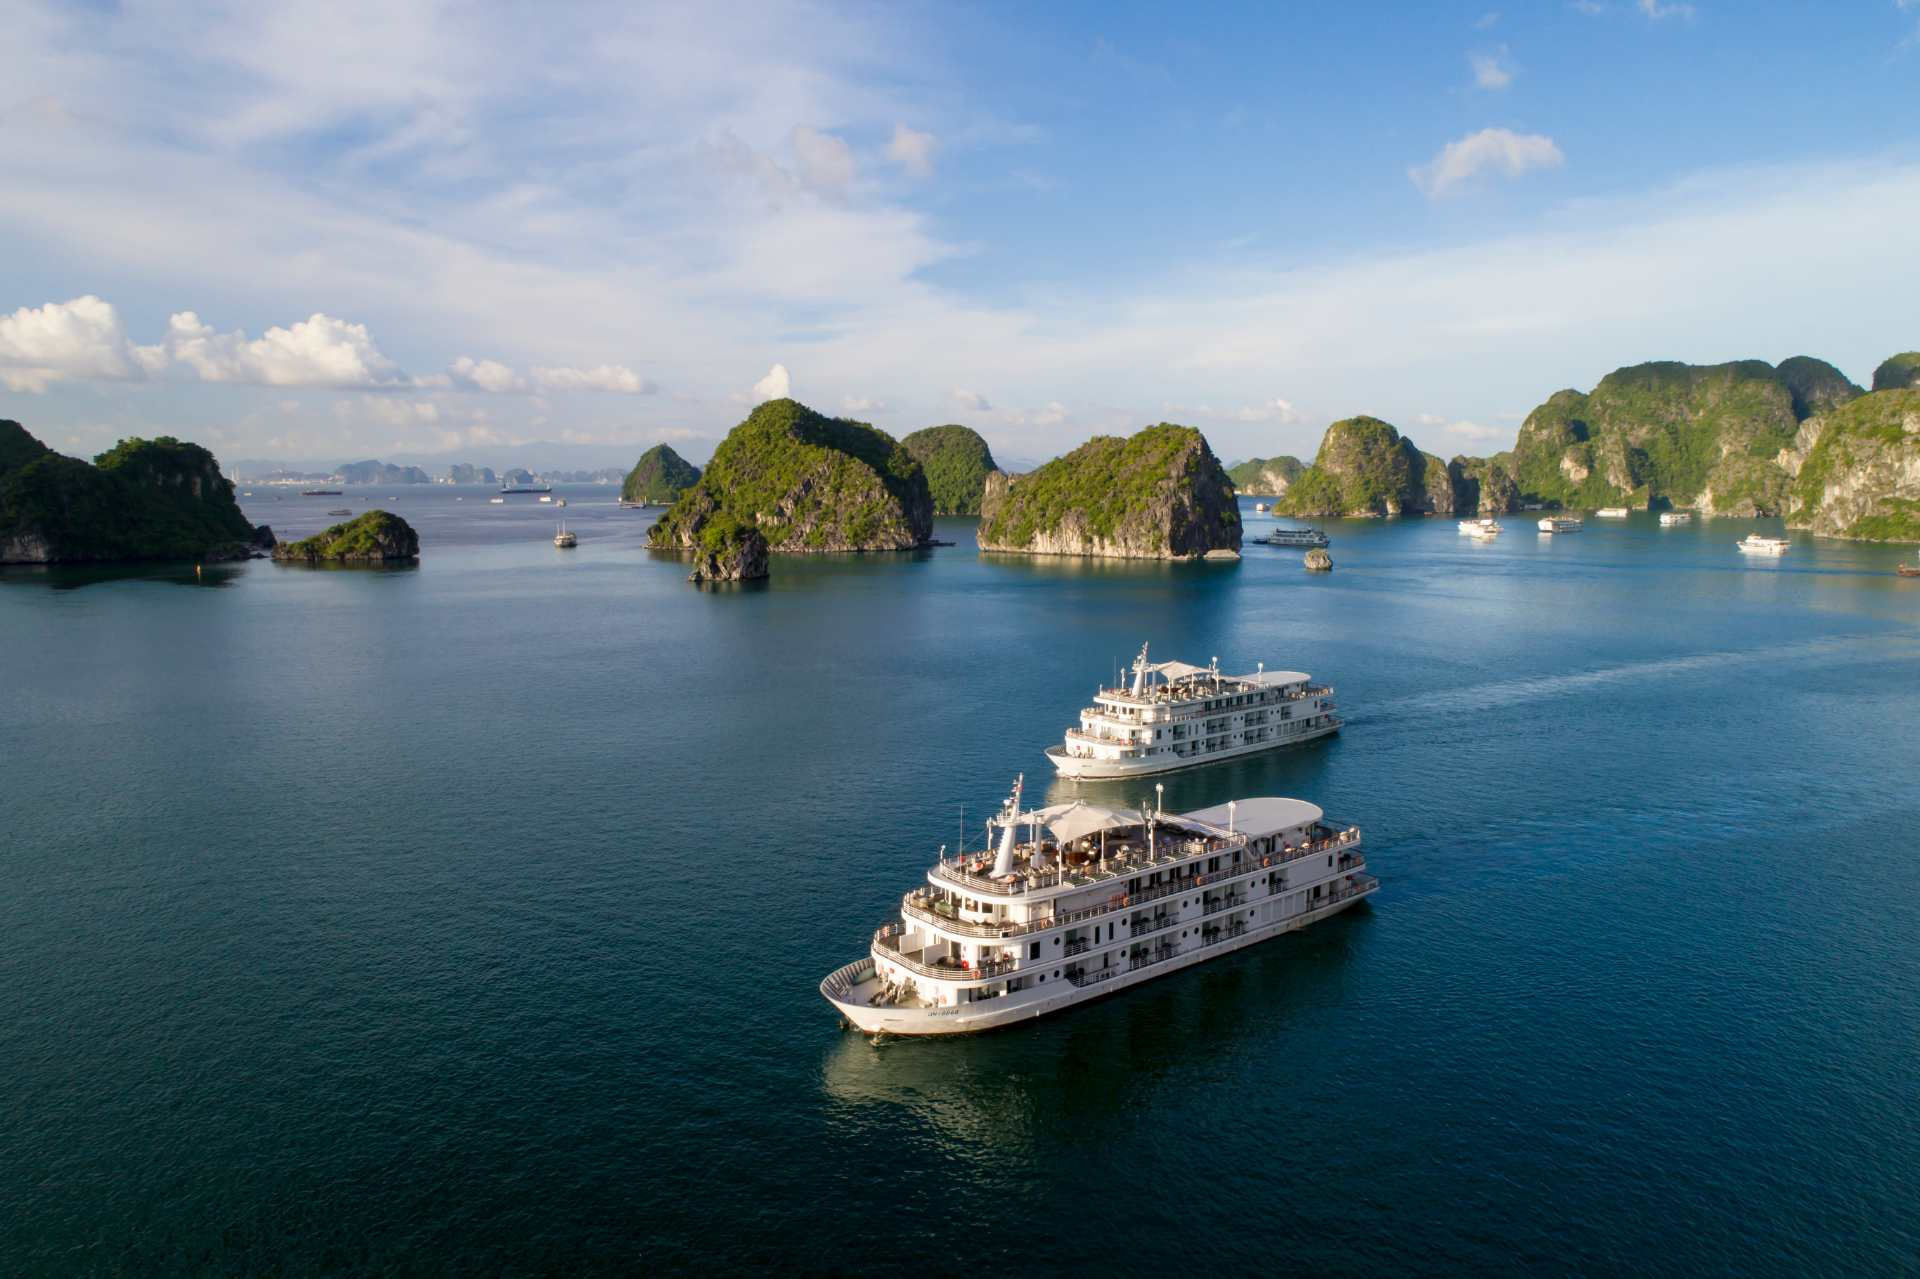 Halong cruise - The best place to visit